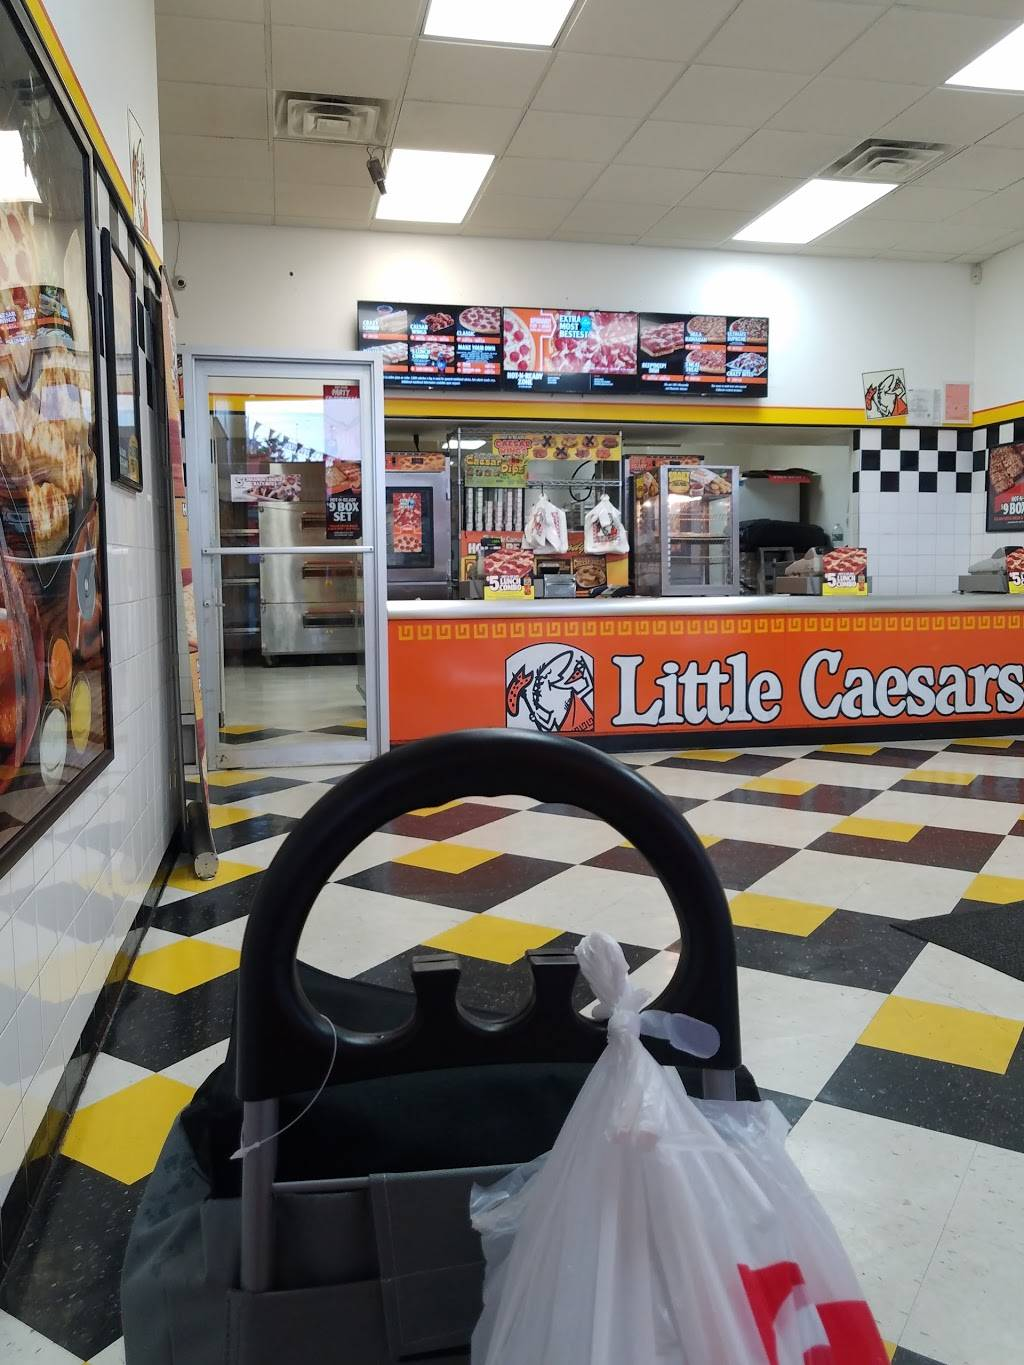 Little Caesars Pizza | meal takeaway | 2874 Fulton St, Brooklyn, NY 11207, USA | 7182354555 OR +1 718-235-4555